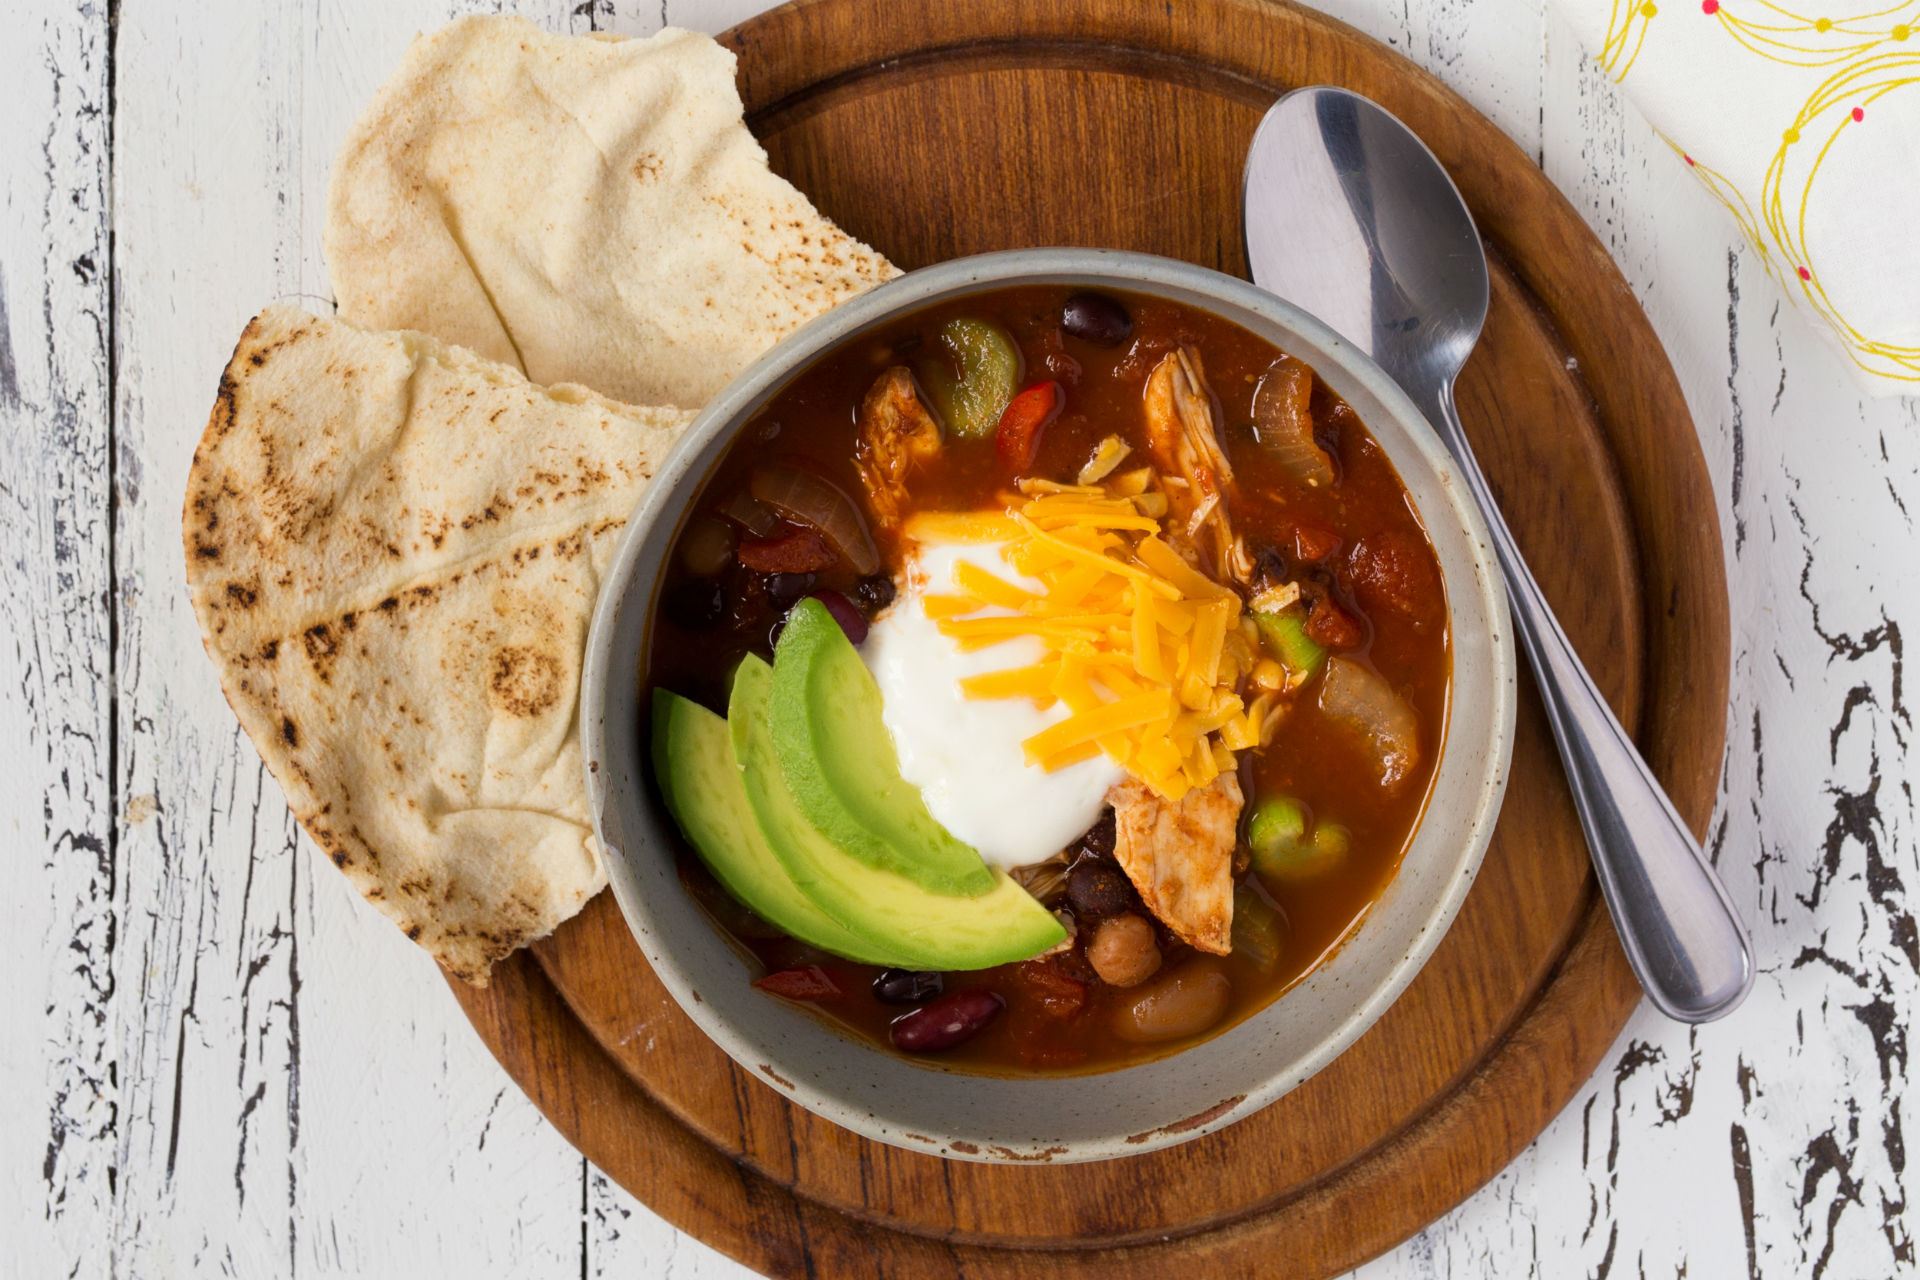 bowl of chili with sour cream, cheese and avocado